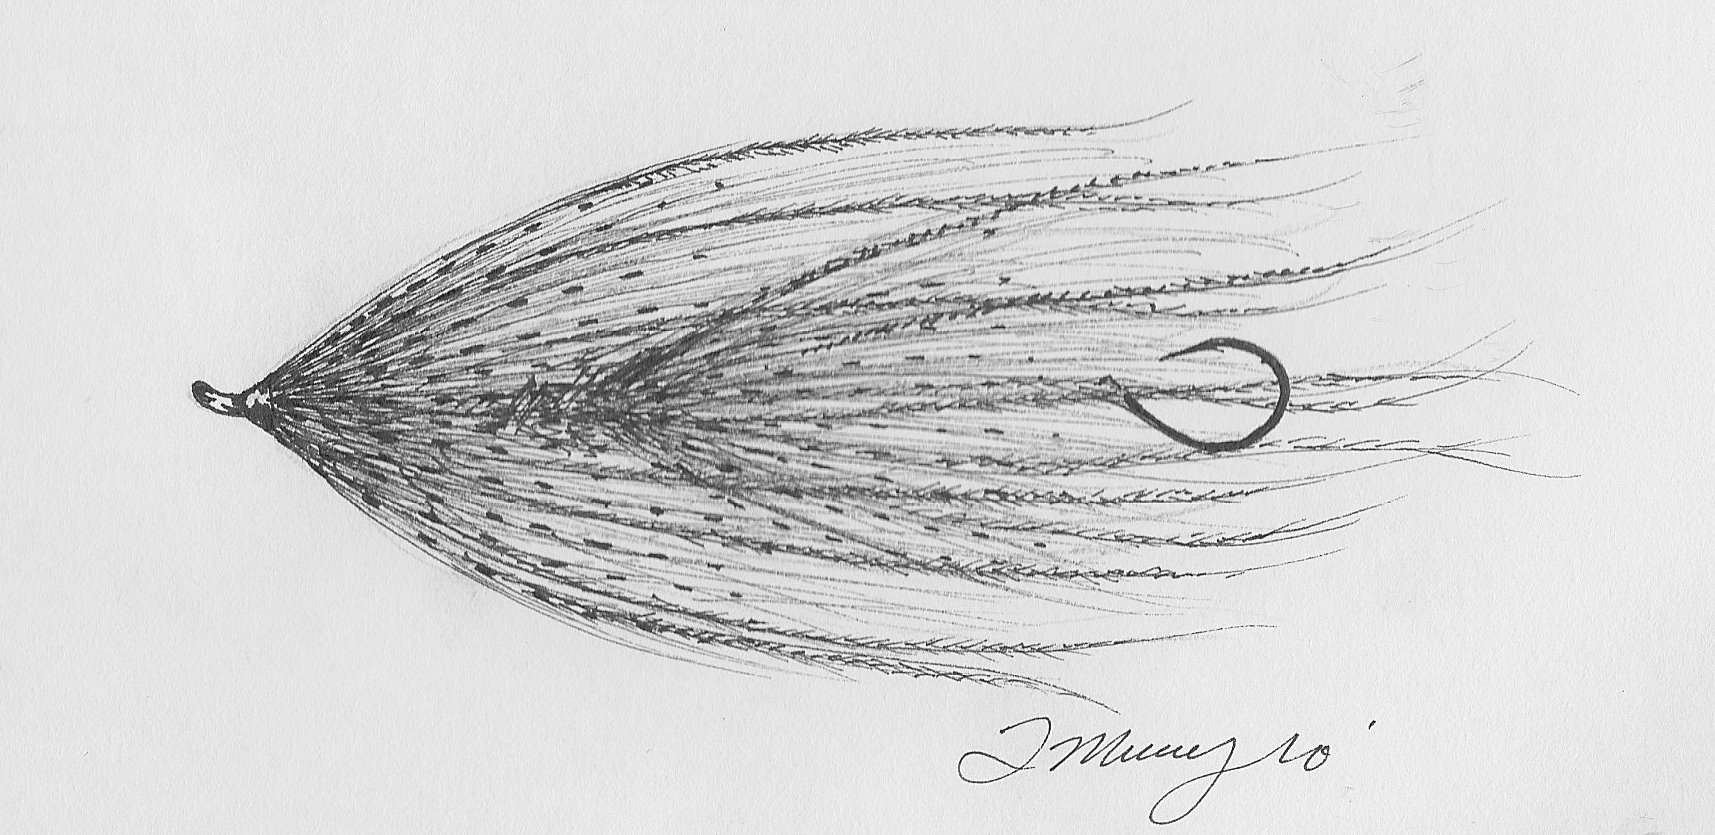 Fly fishing fly drawings - photo#6